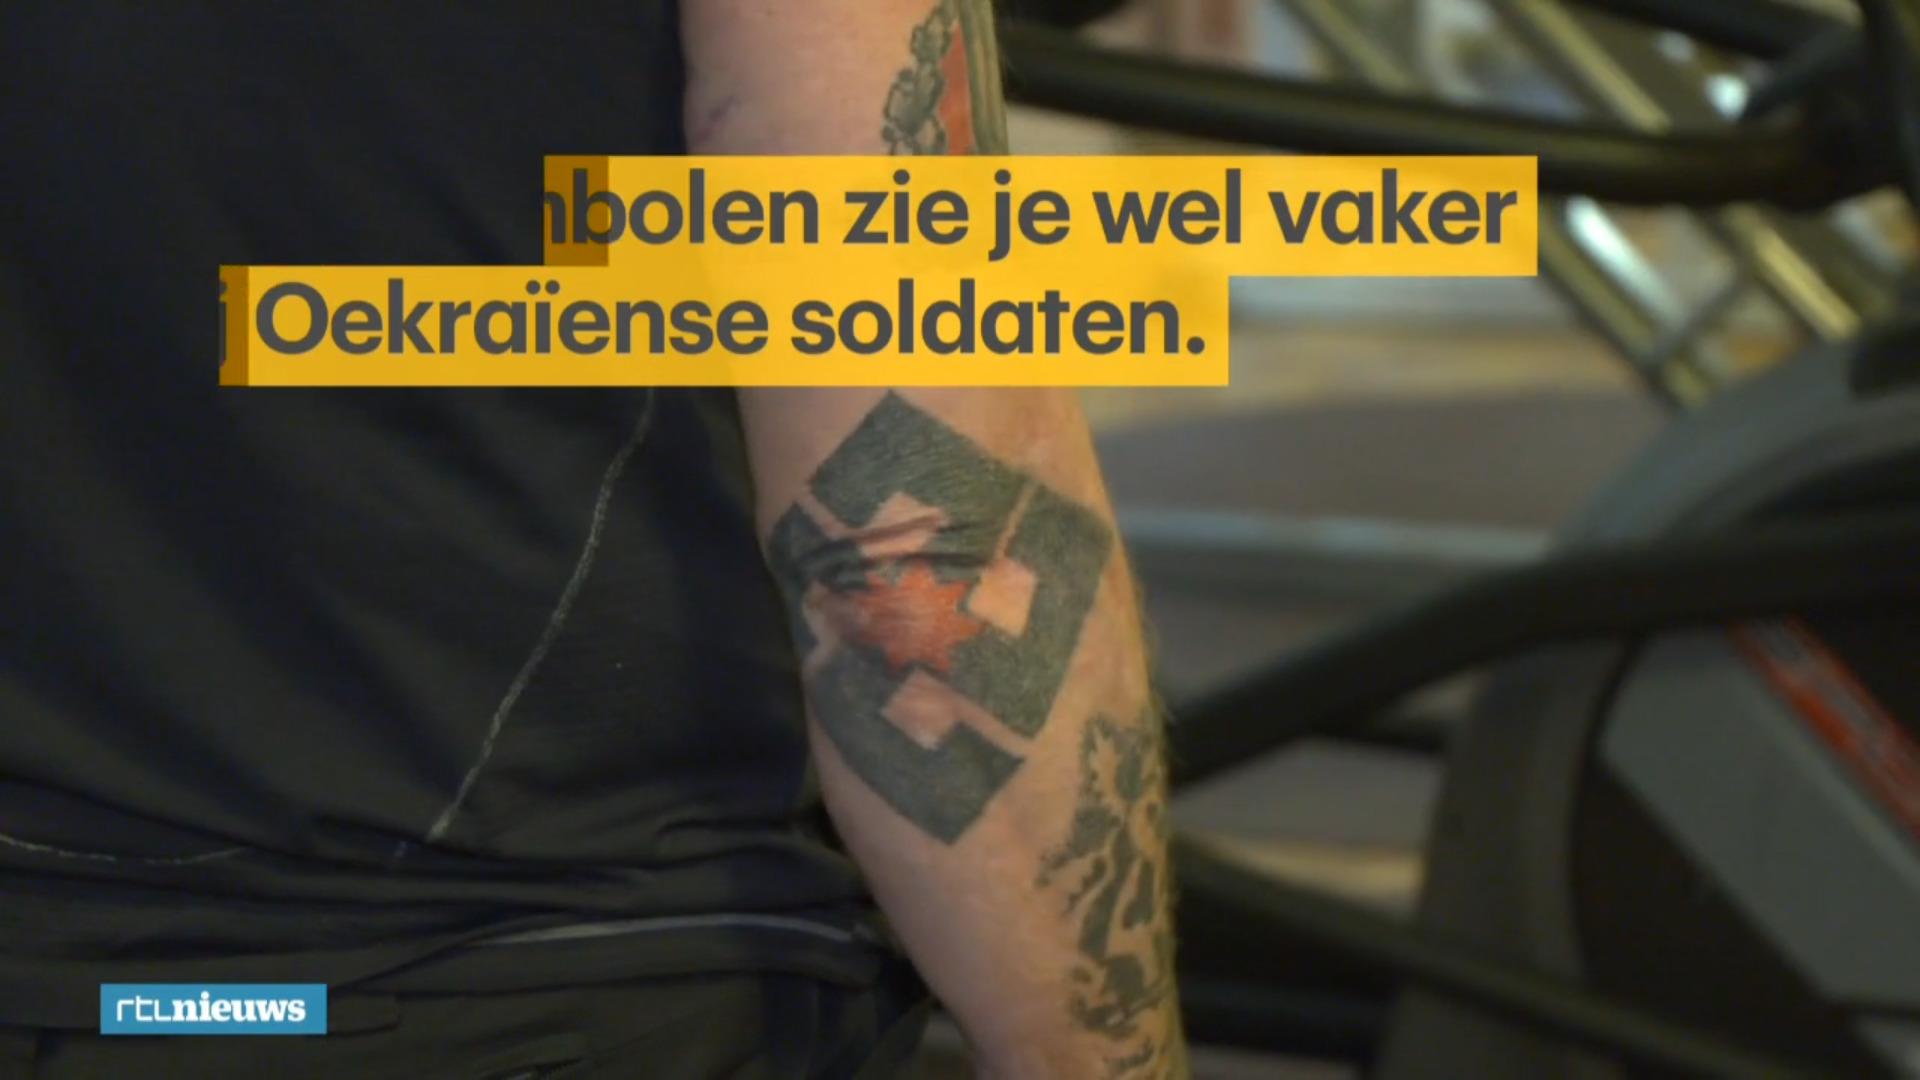 """My Swastika has Curved Edges, I am not a Nazi"": Ukrainian Defender Of Democracy To Dutch Media"